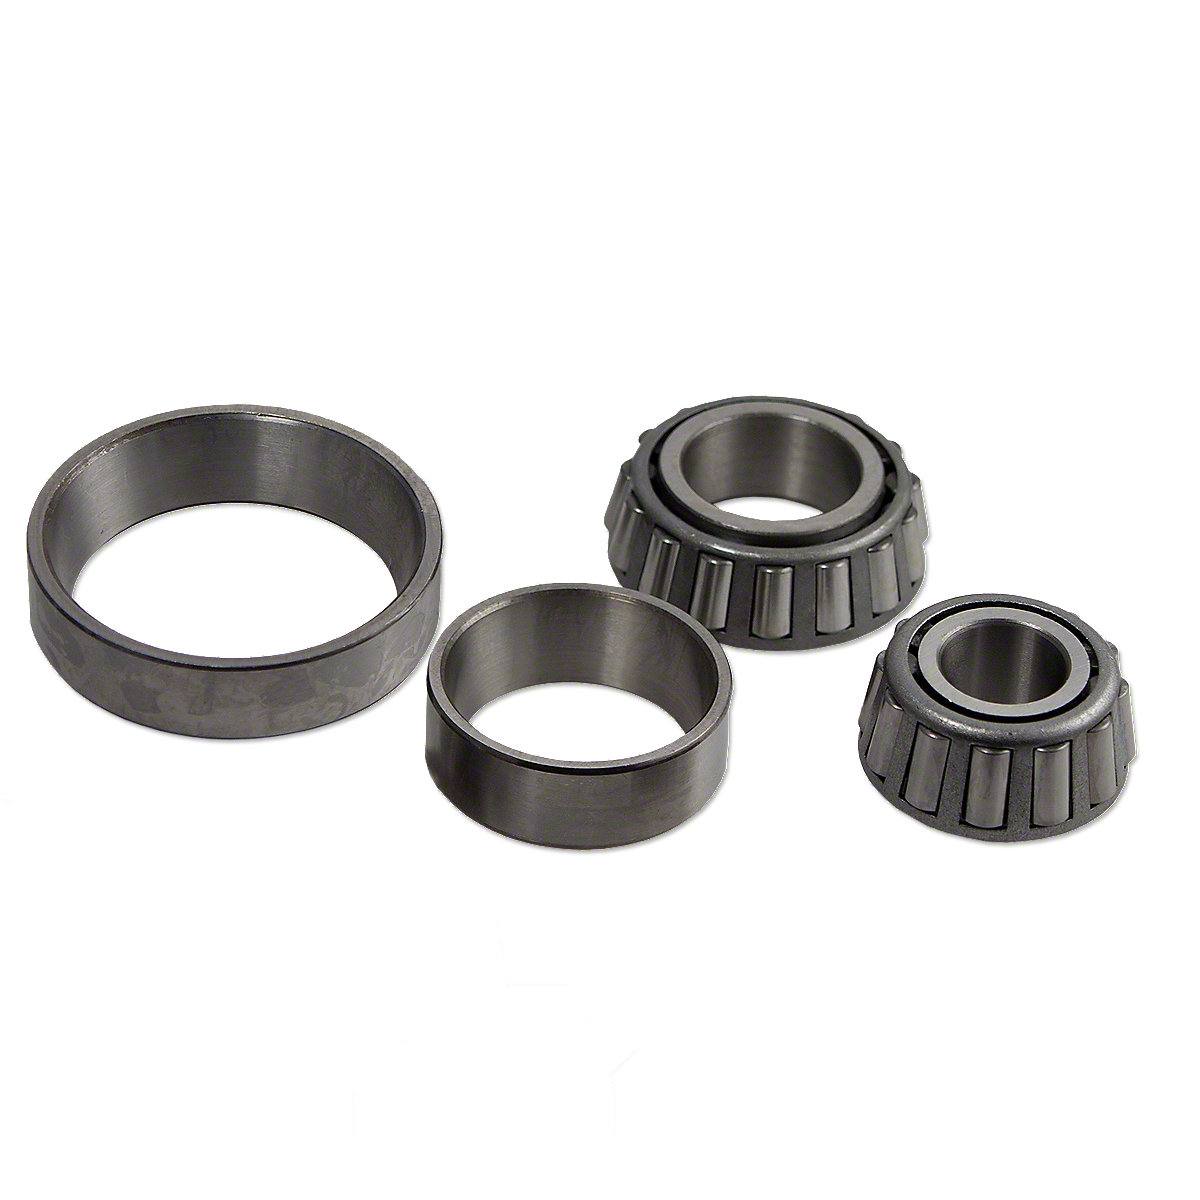 Front Wheel Bearing Kit For Allis Chalmers: B, C, CA, D10, D12, IB.